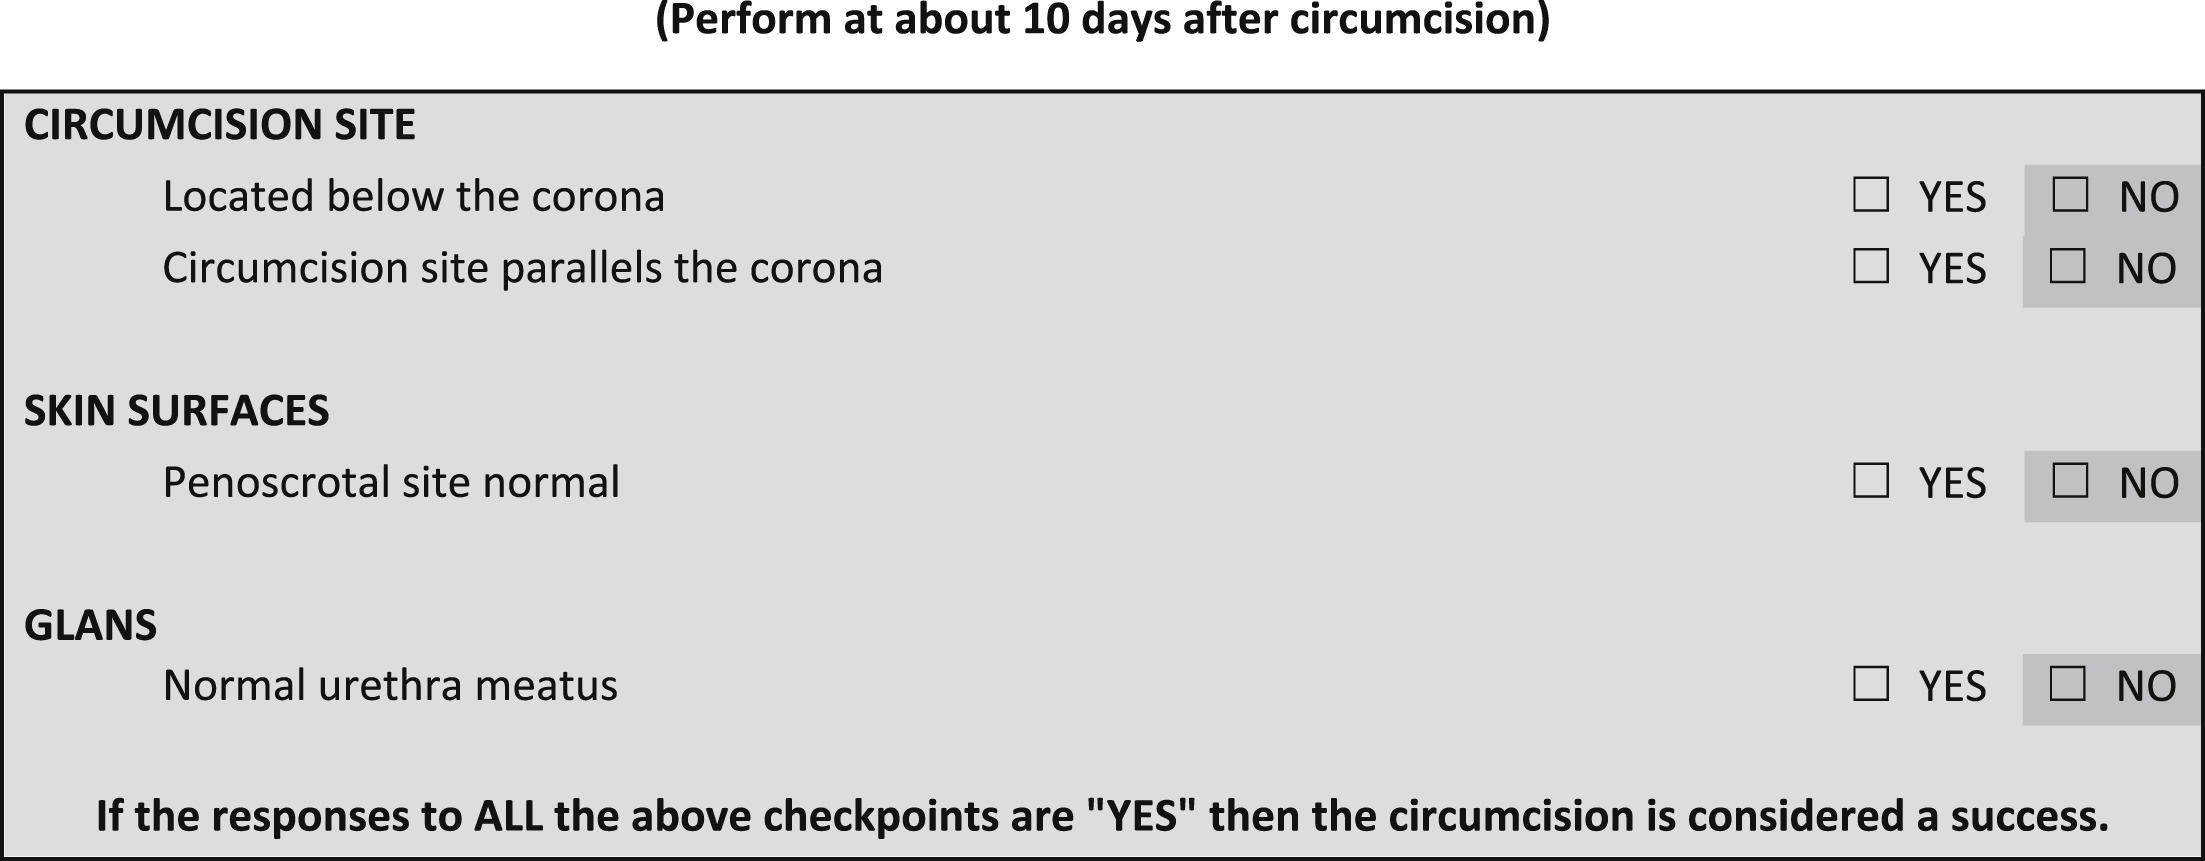 Checklist Assessment Tool To Evaluate Suitability And Success Of Neonatal Clamp Circumcision A